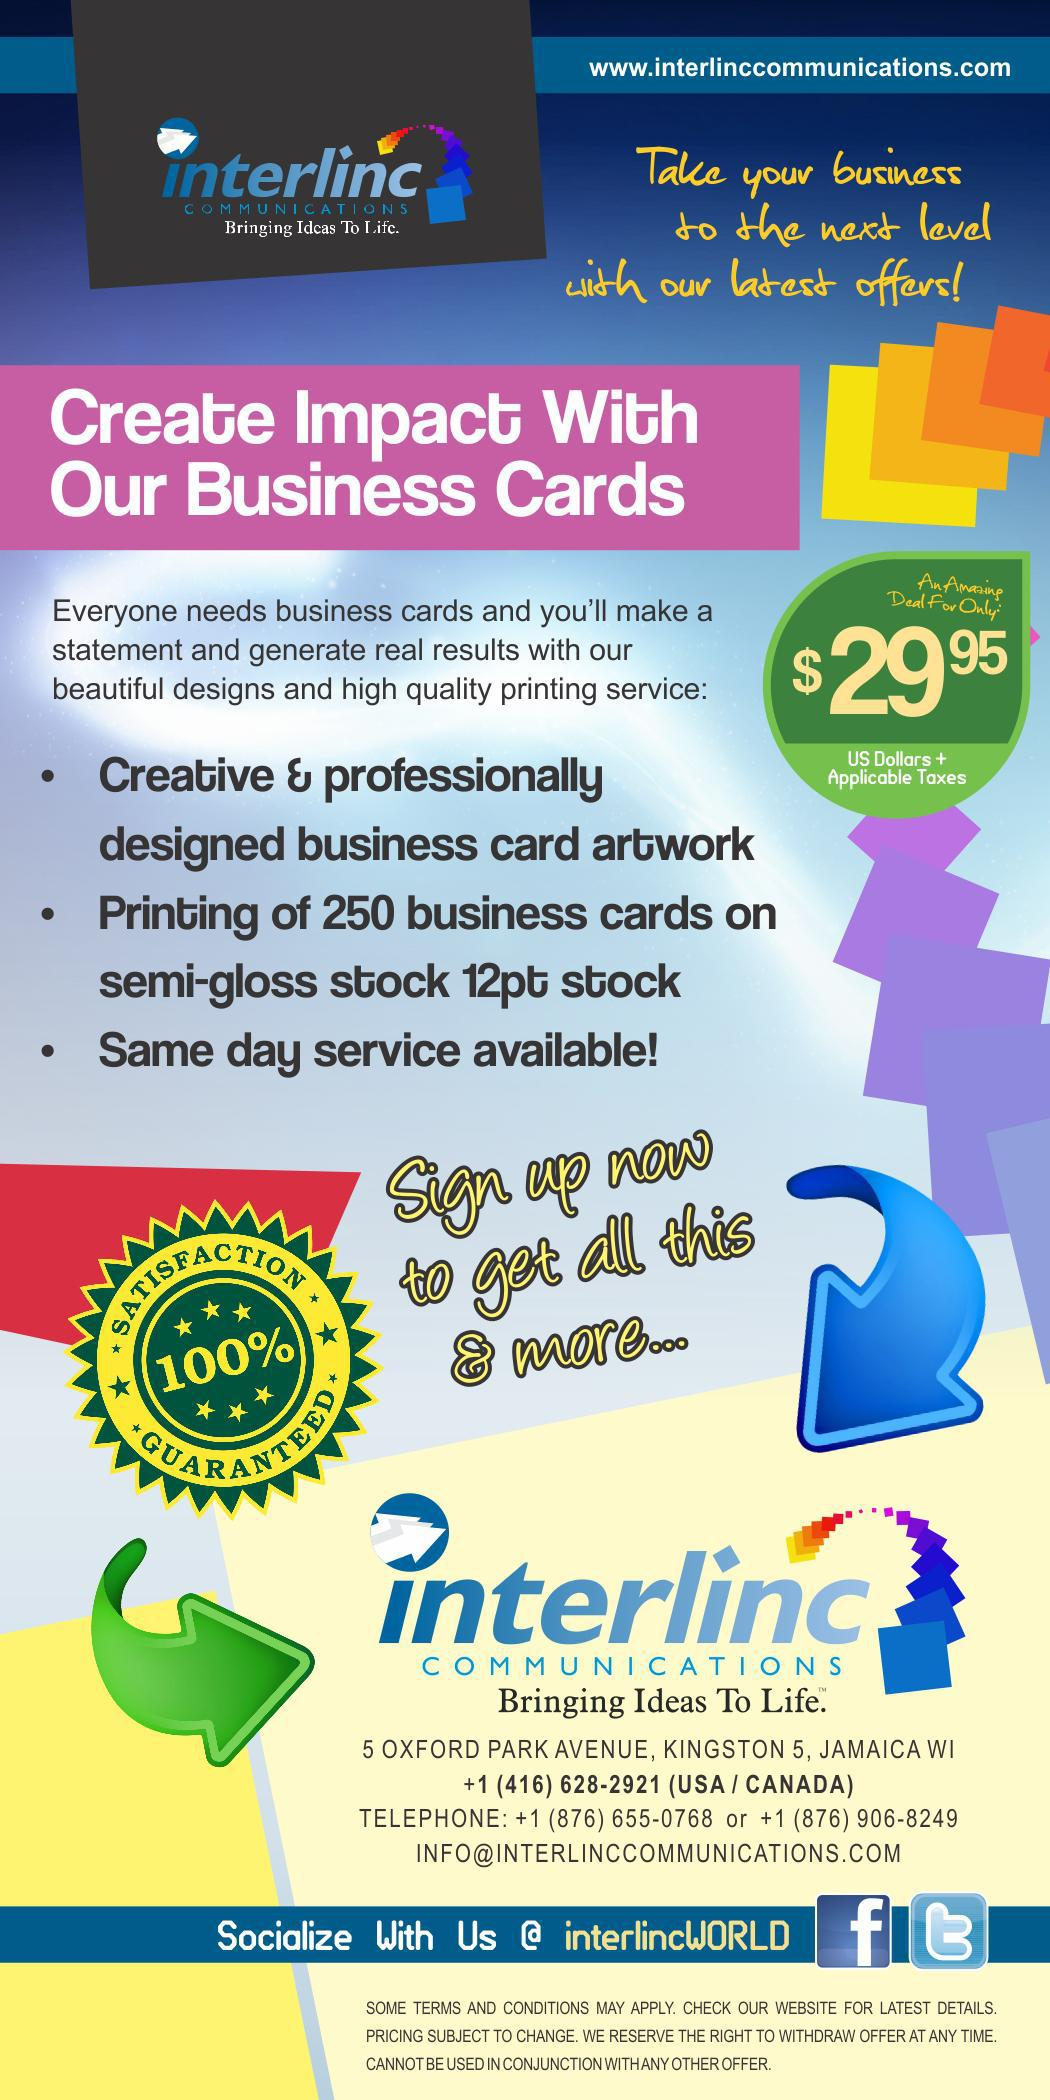 Business card print leeds images card design and card template business cards leeds city centre images card design and card same day business cards leeds image reheart Choice Image